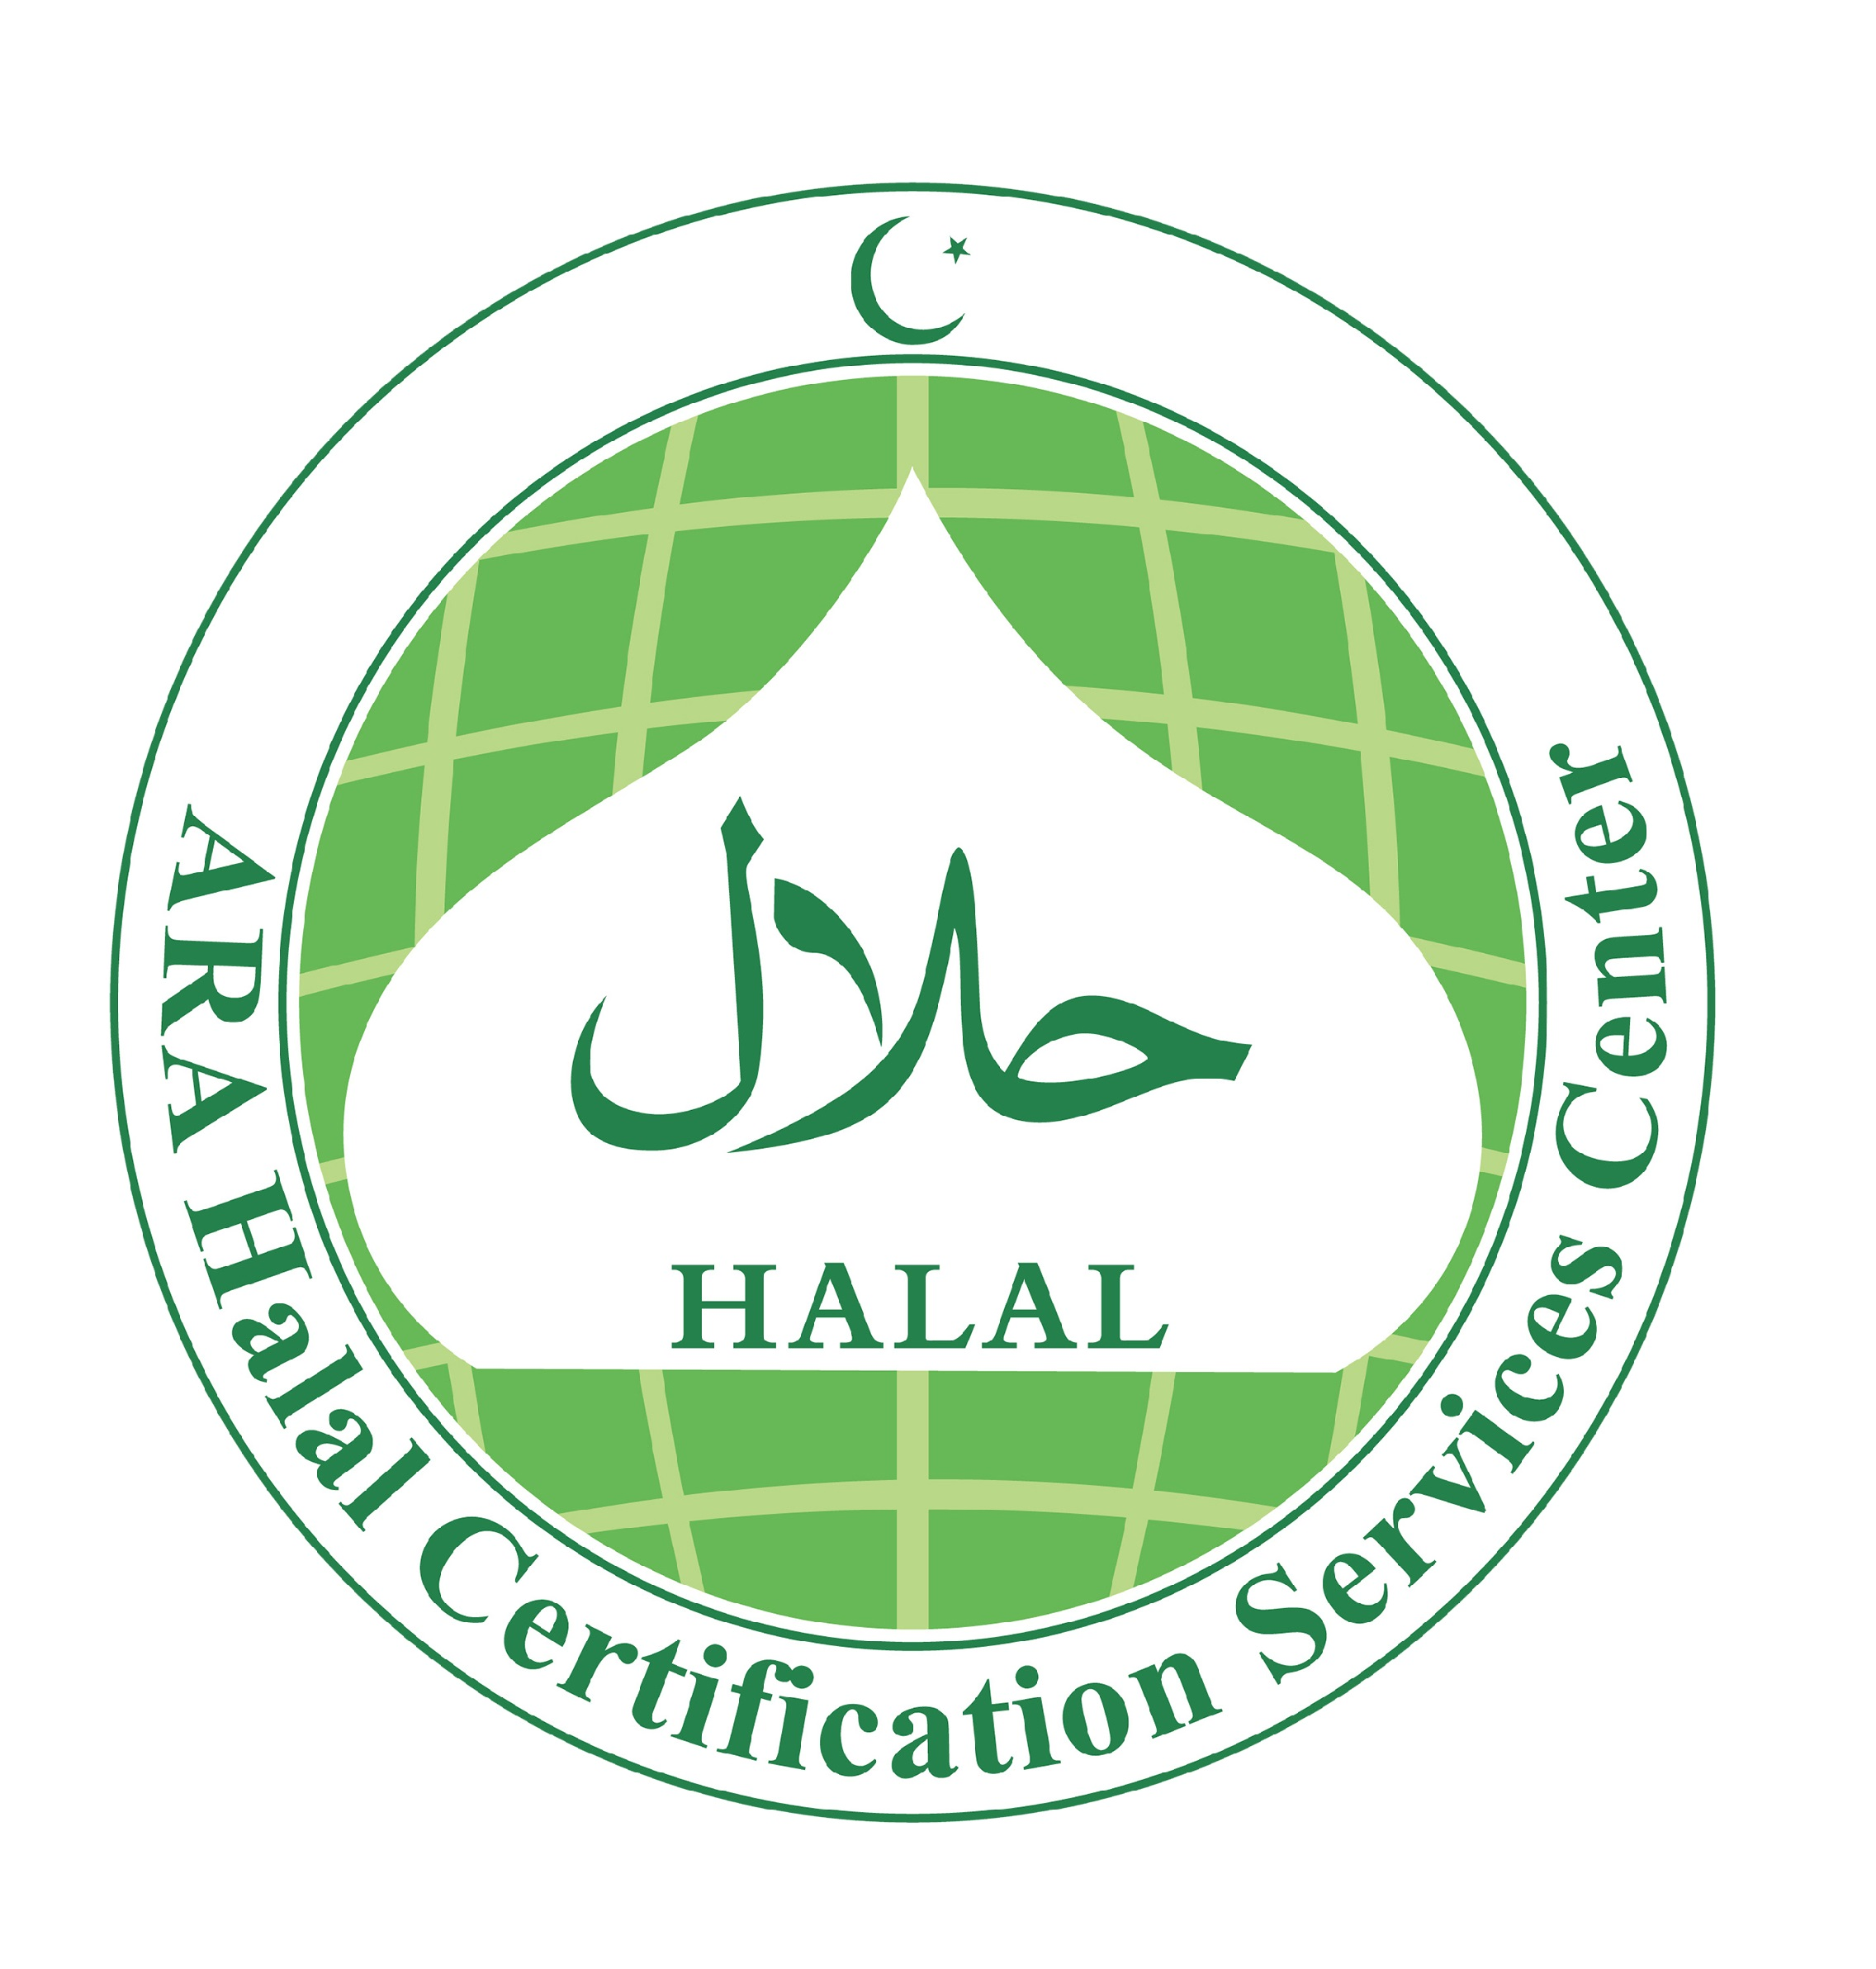 ARA Halal Certification Services Center Inc